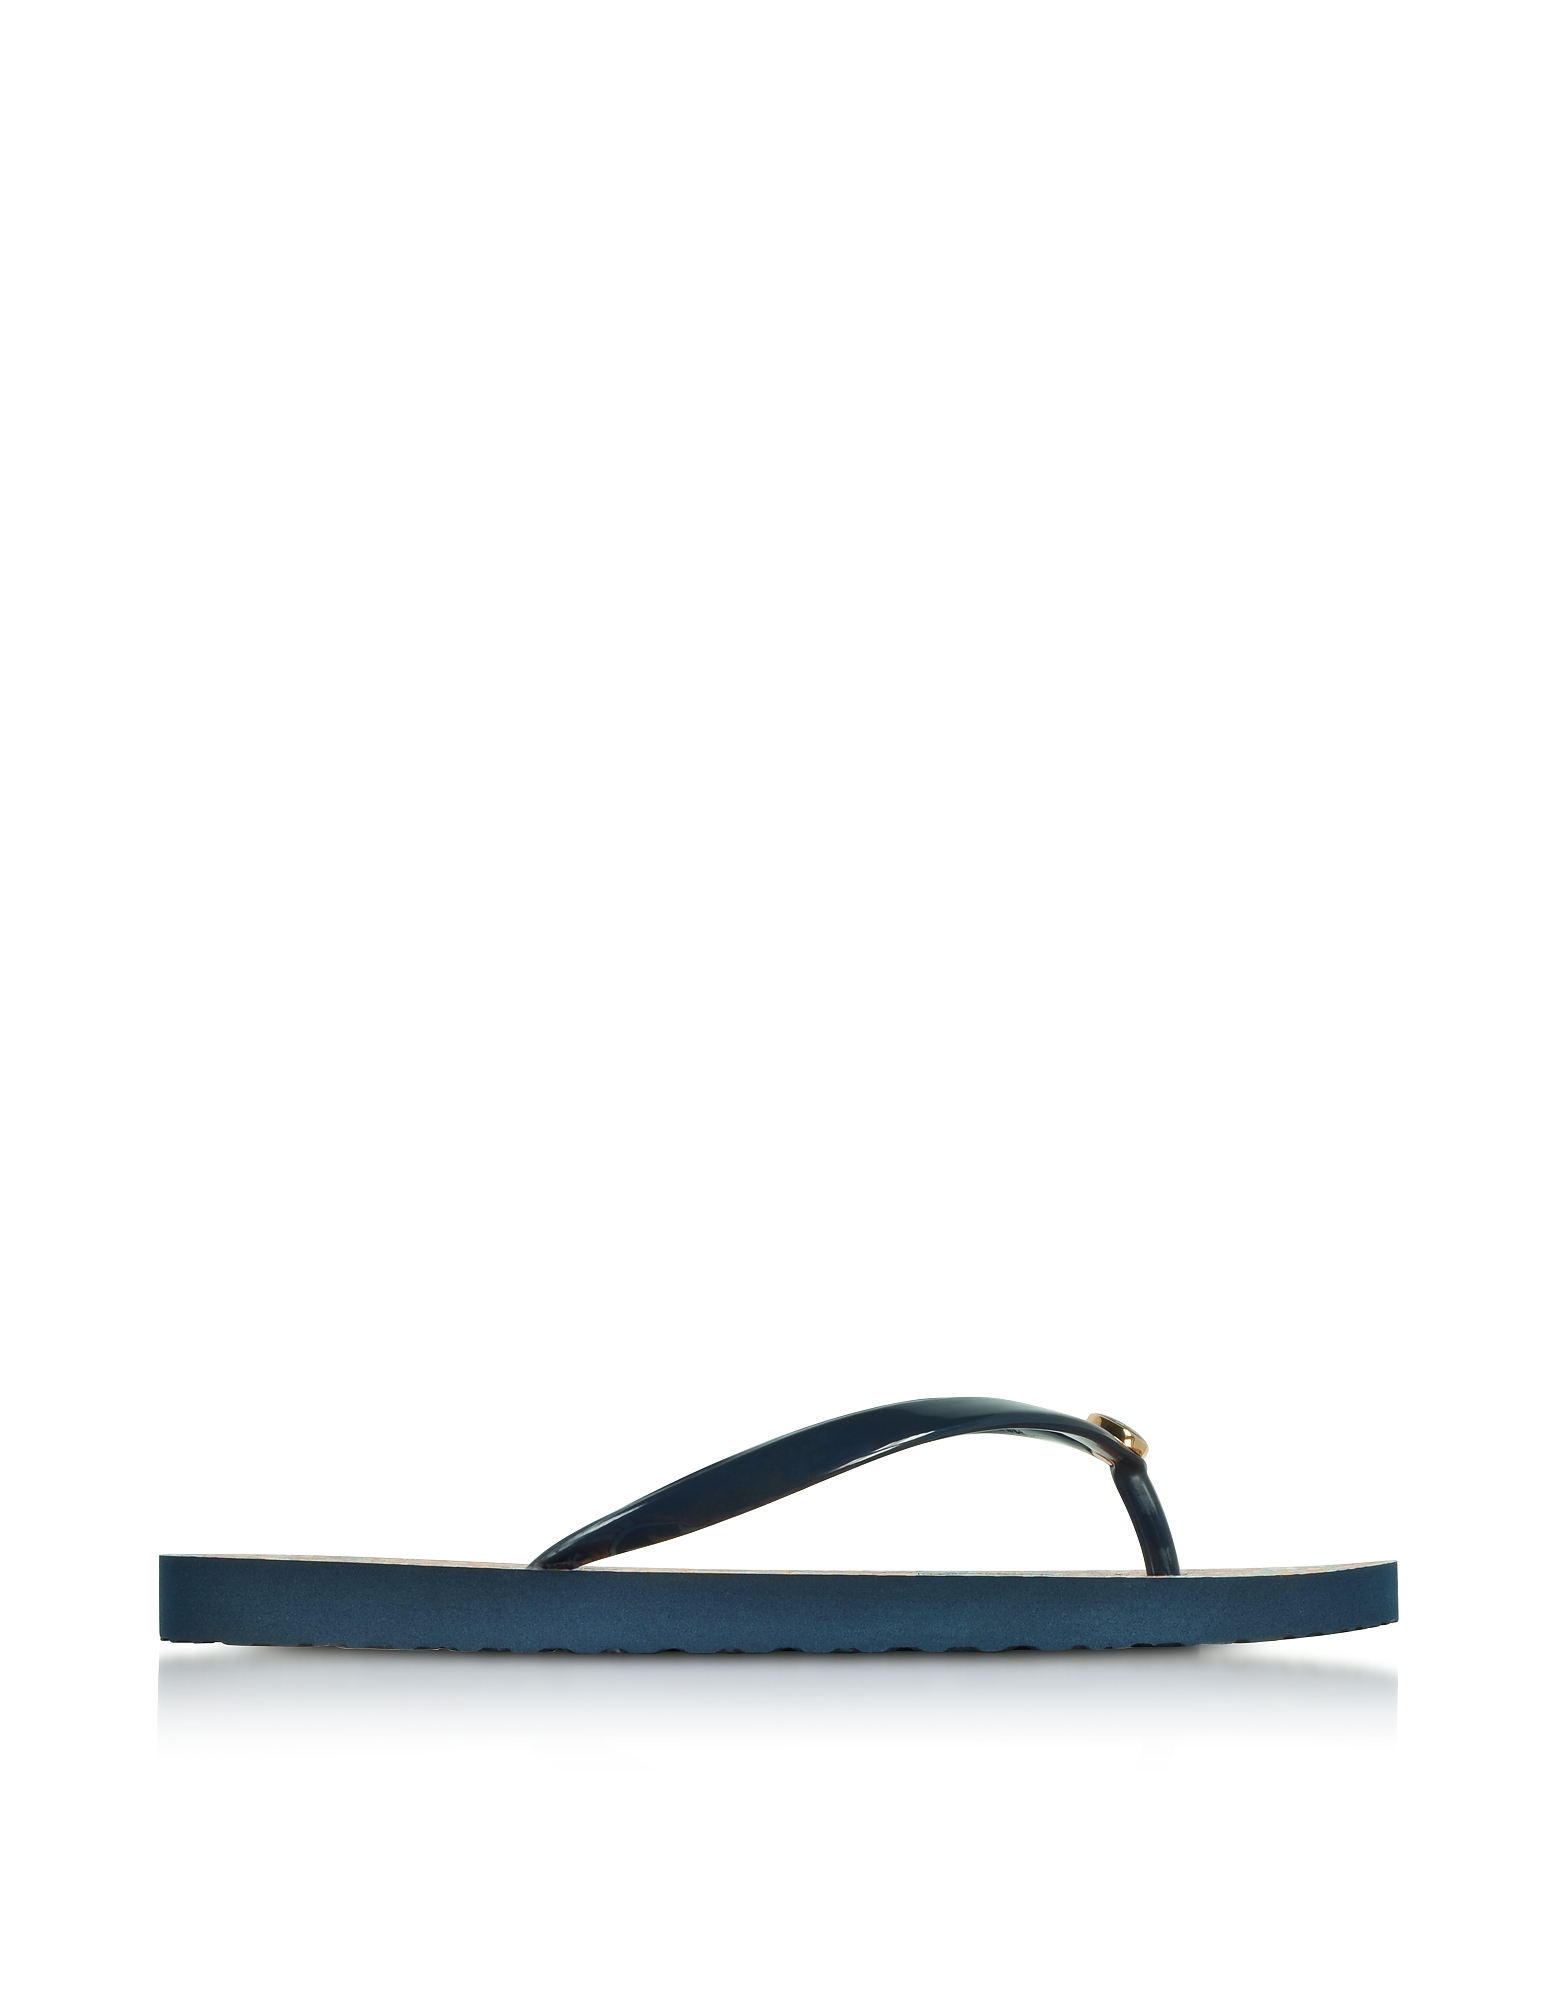 Tory Burch Shoes, Thin Tory Navy and Psychedelic Geo Flip Flop